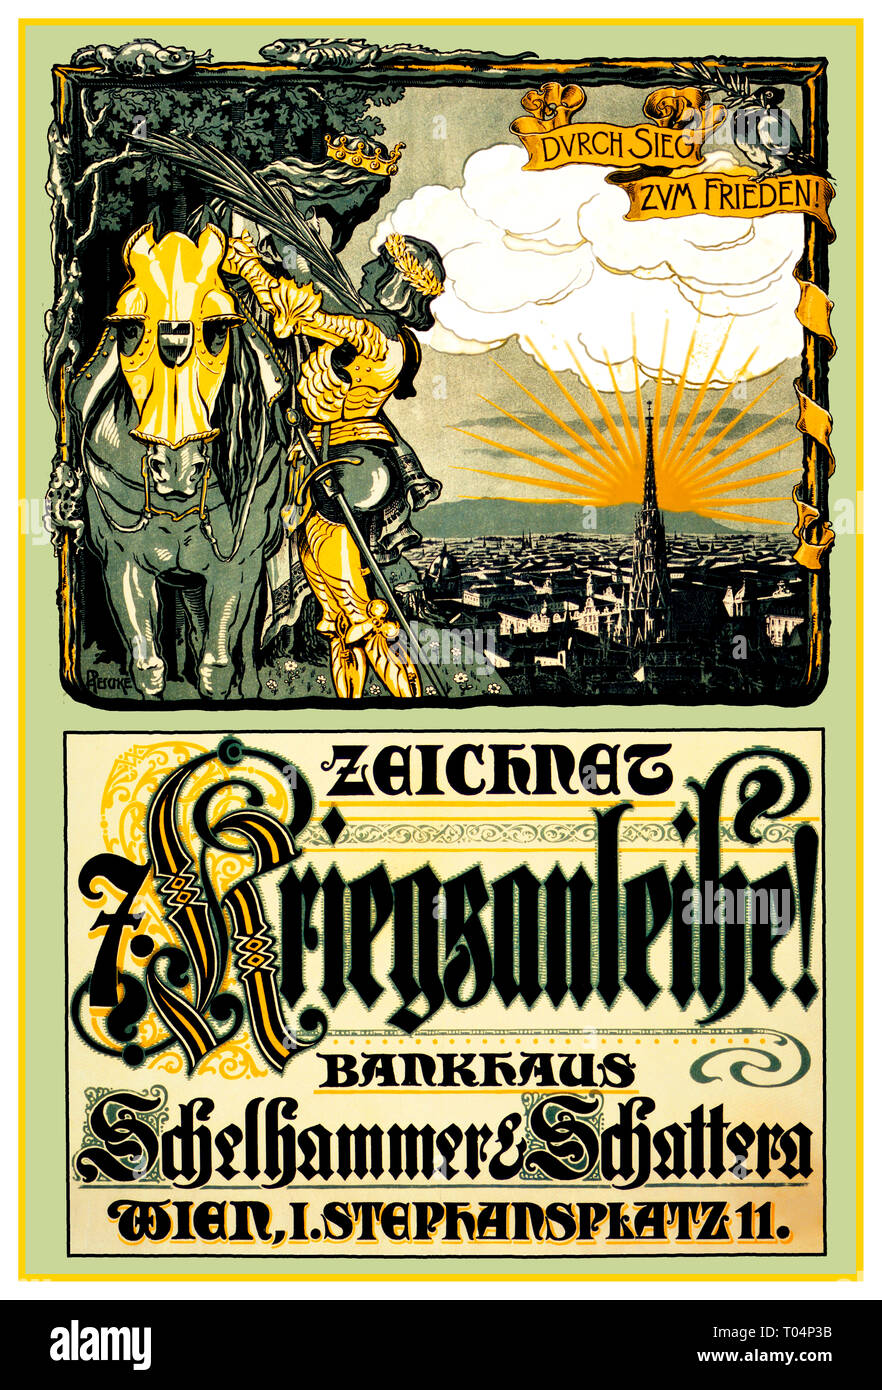 WW1 1917 German Propaganda Appeal War Loan Poster showing framed picture of a medieval knight with a laurel wreath on his head reaching up to help a woman wearing a crown seated on a horse. In background, Vienna with St. Stephens Cathedral and the slogan 'Durch Sieg zum Frieden'  'PEACE  THROUGH VICTORY'  Main Text: Subscribe to the War Loan, Bankhouse Schelhammer & Schattern. Dated 1917 World War 1 - Stock Image